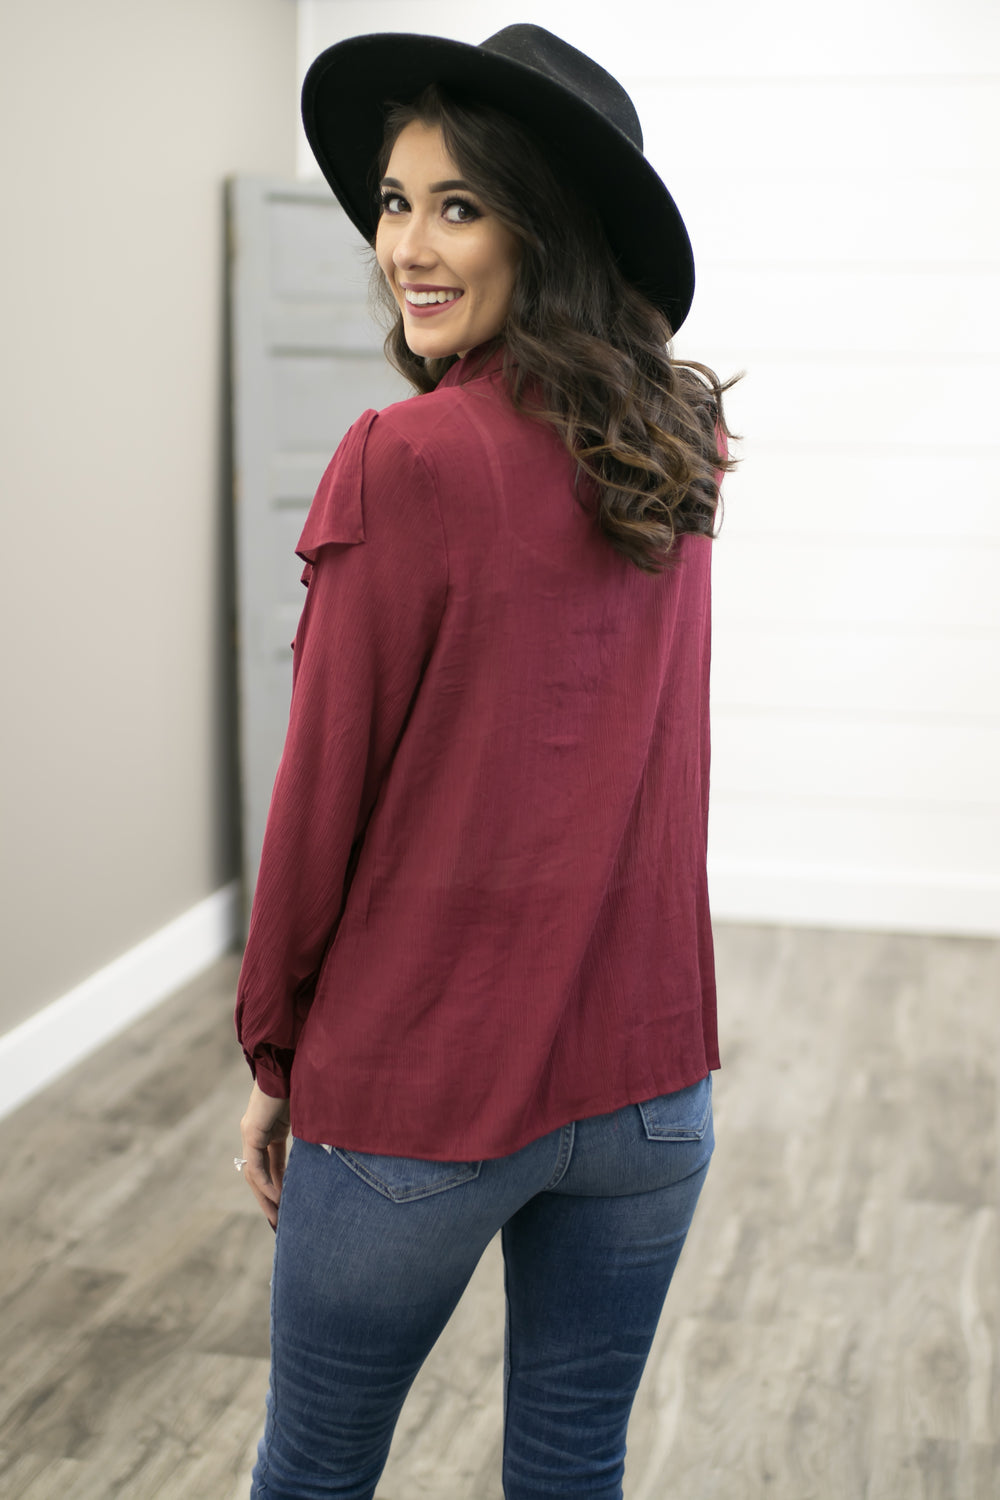 The Dixie Stampede Top - Burgundy